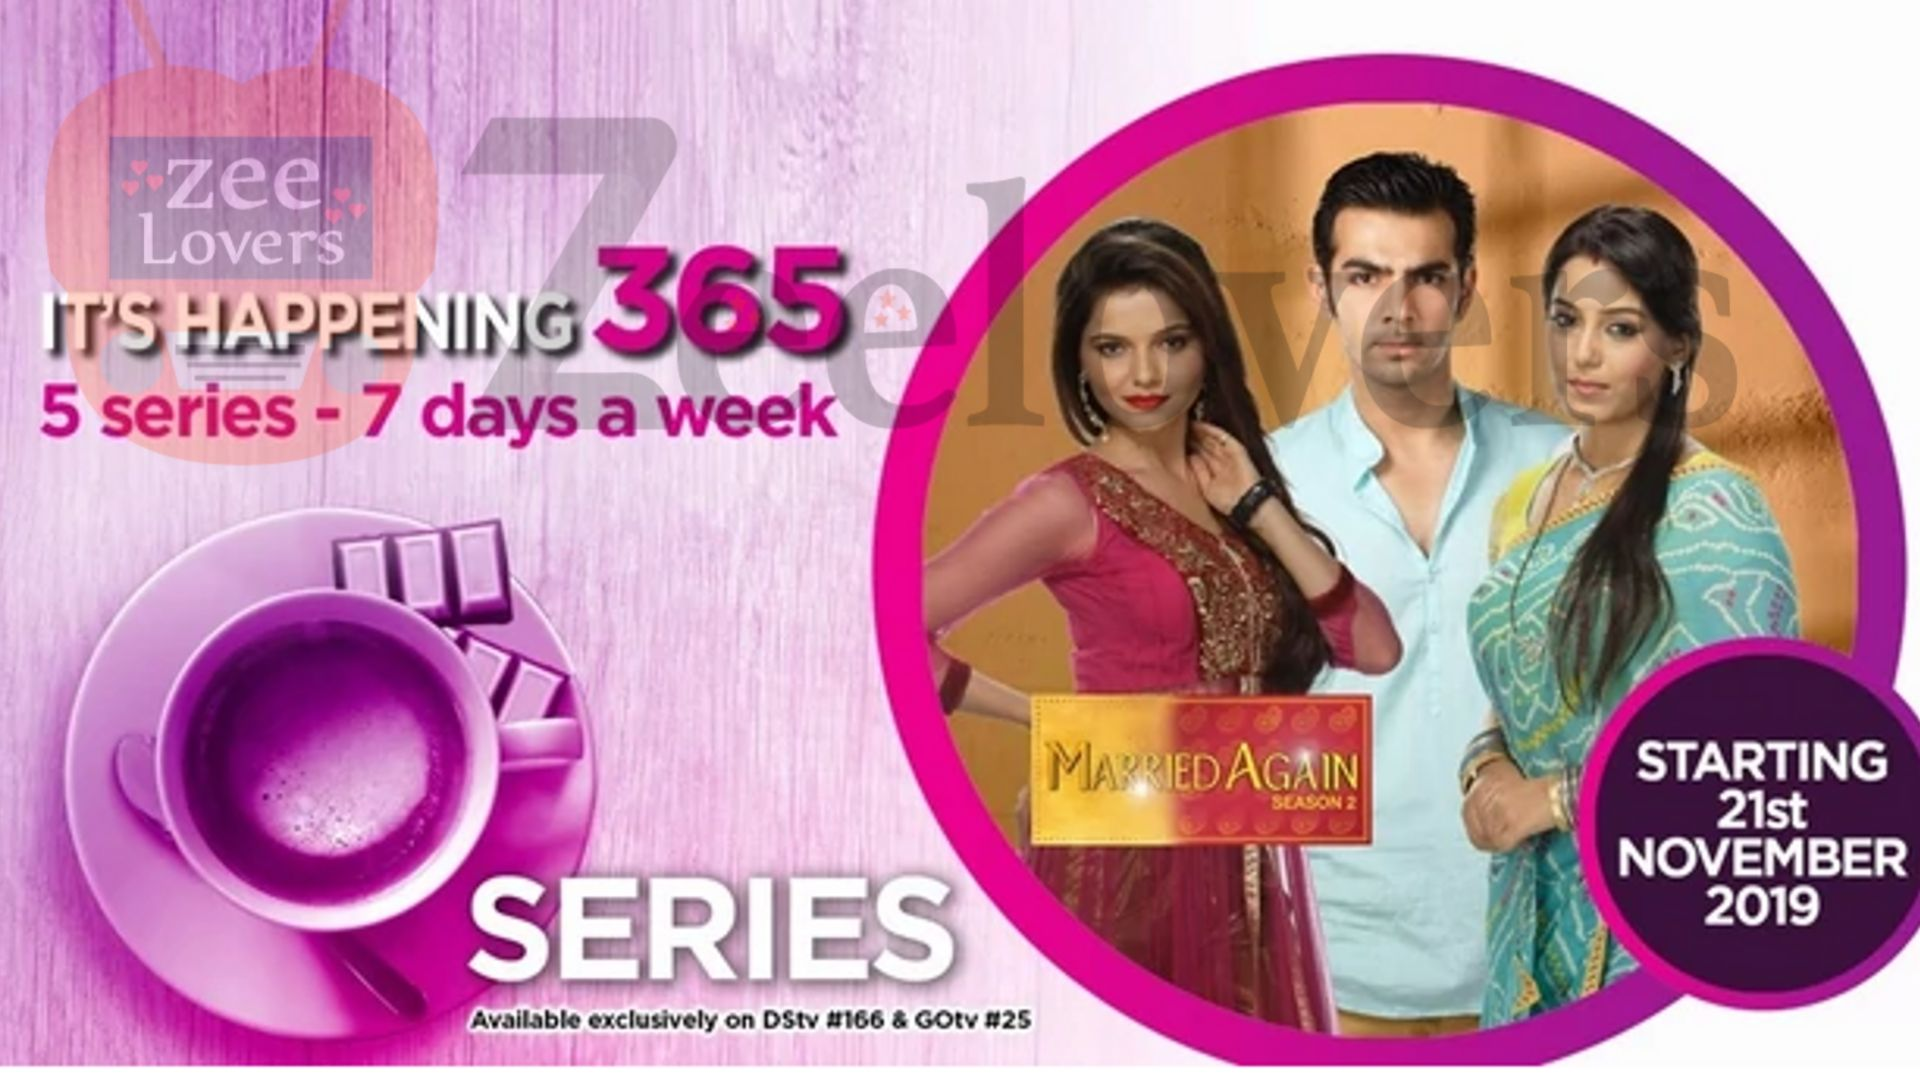 Zee World exciting lineup for 2020 - Married Again Season 2